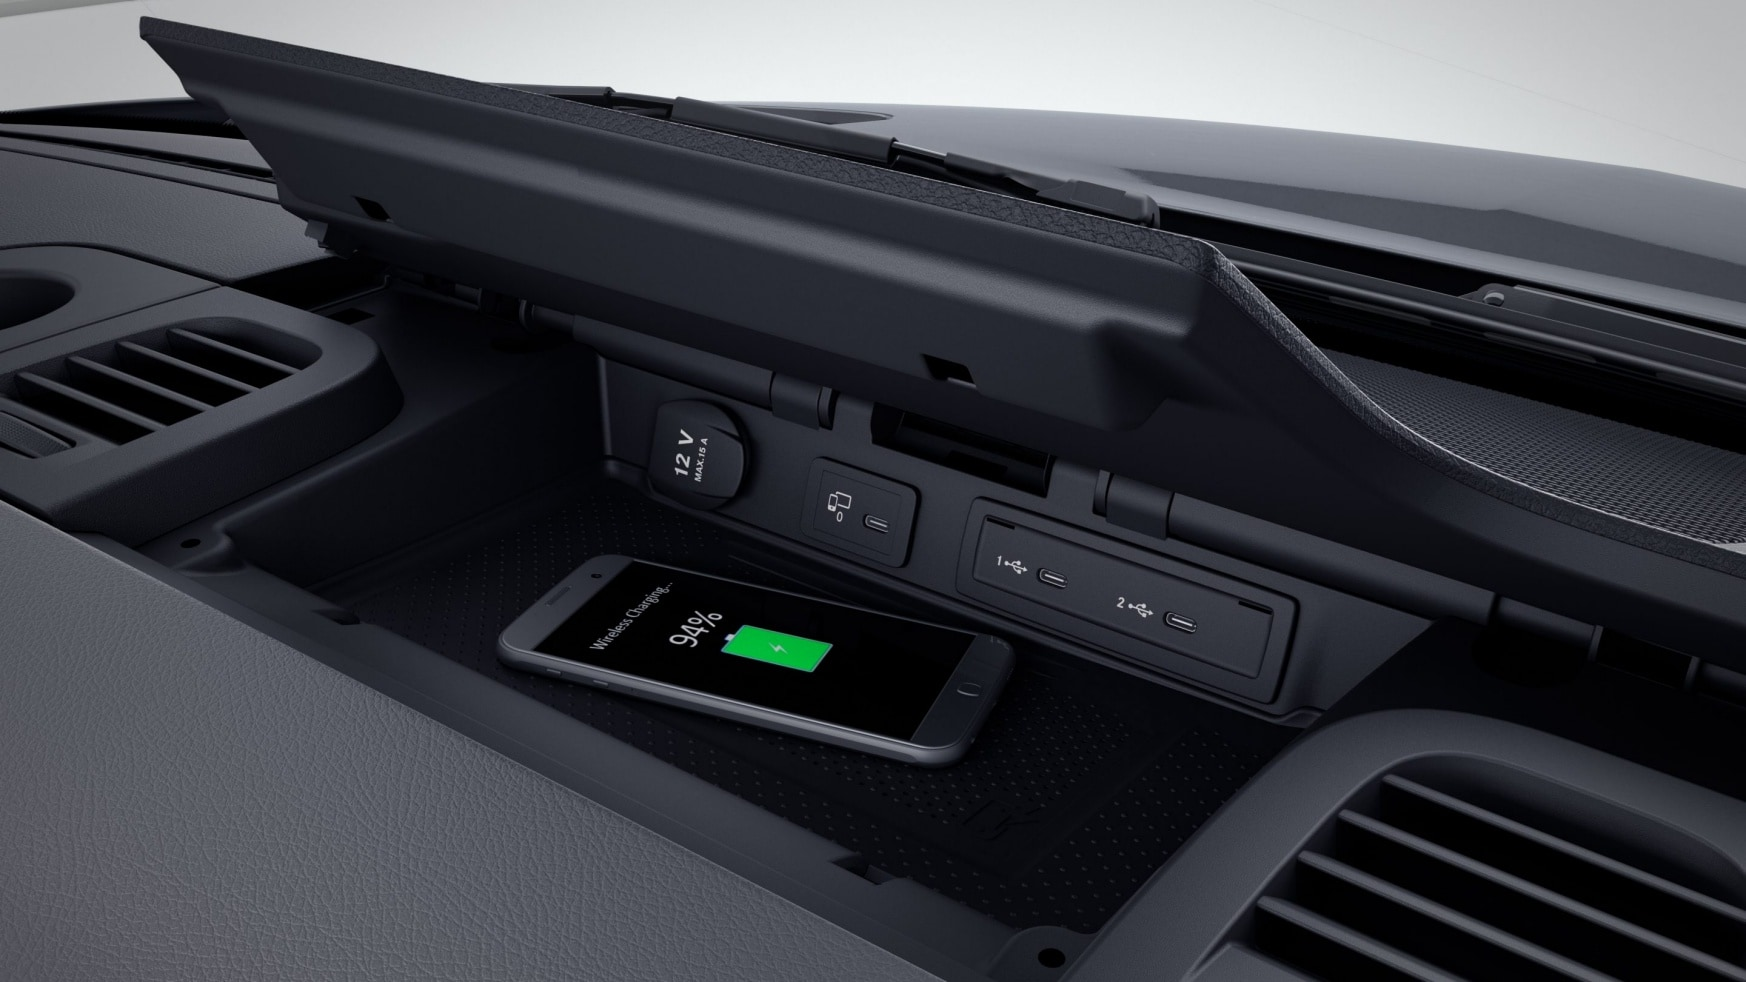 Sprinter Chassis-cabina, base para smartphones com Wireless Charging